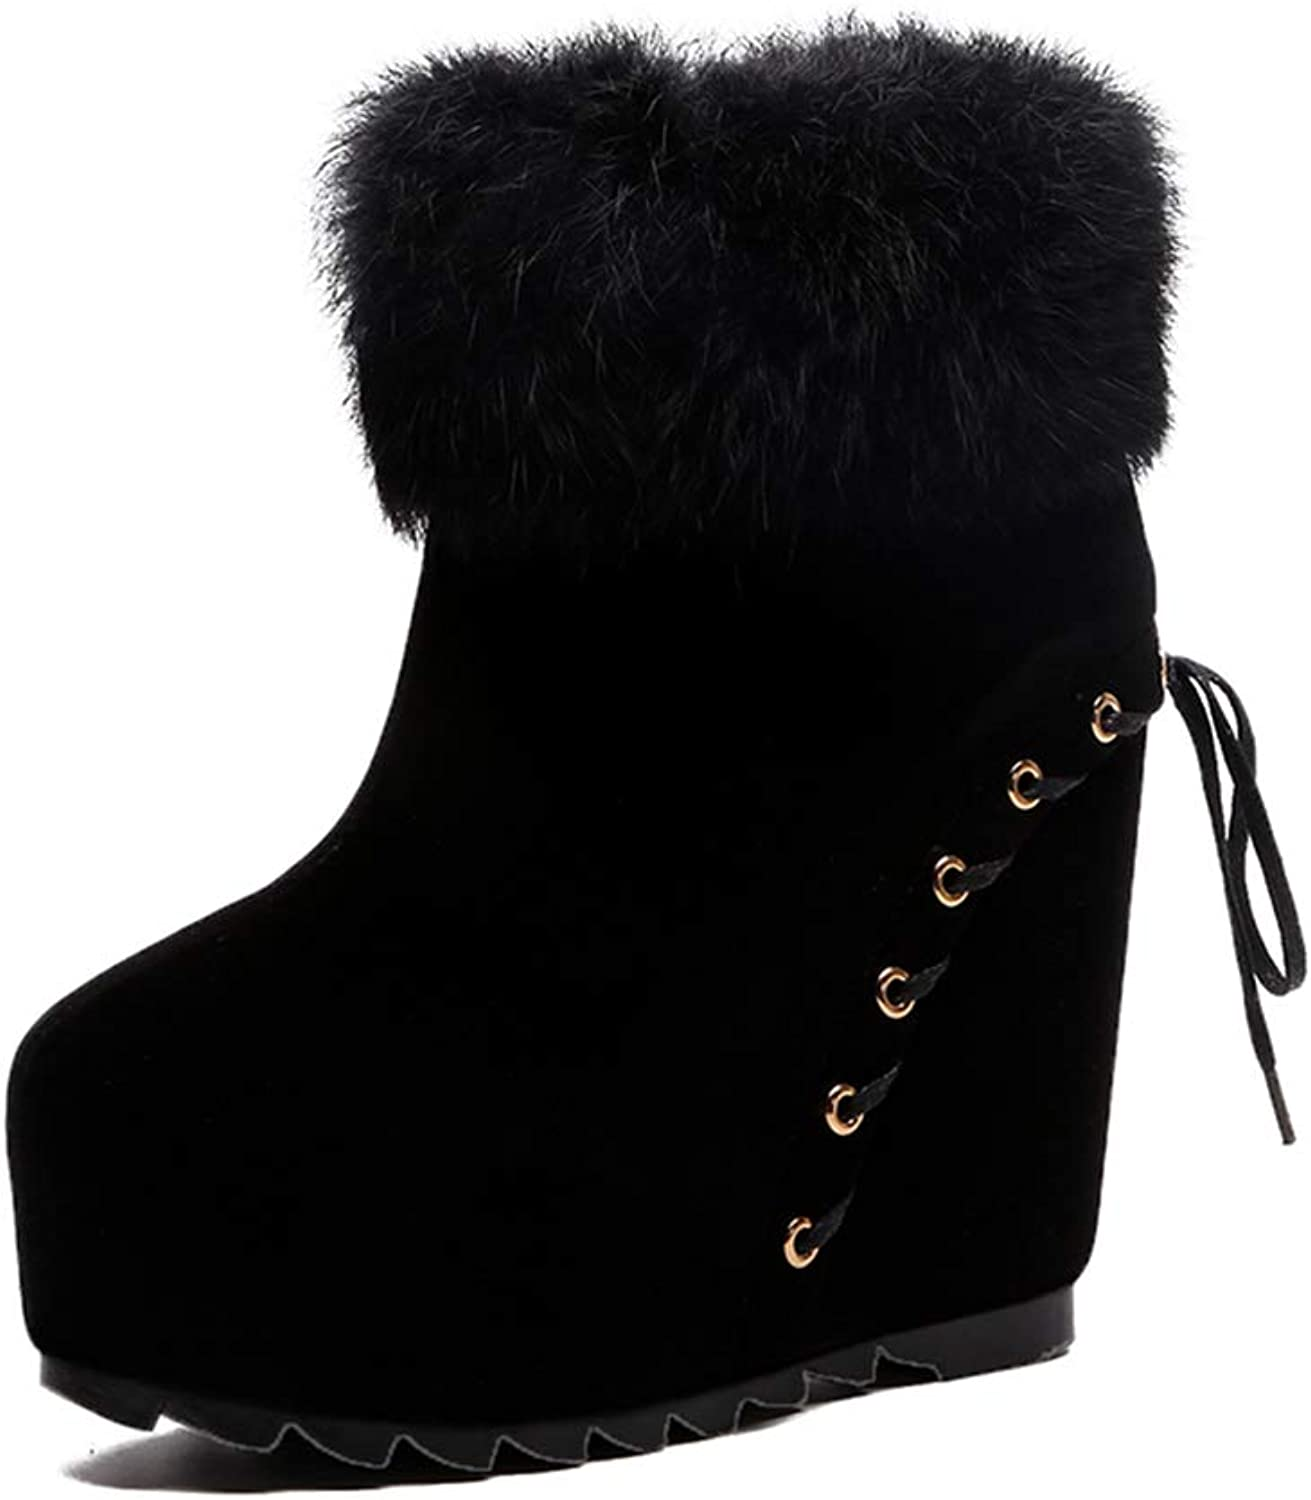 T-JULY Women's Back Lace up Wedges Ankle Boots Winter Super High Heels Platform Fur Snow Boots Warm shoes Booties